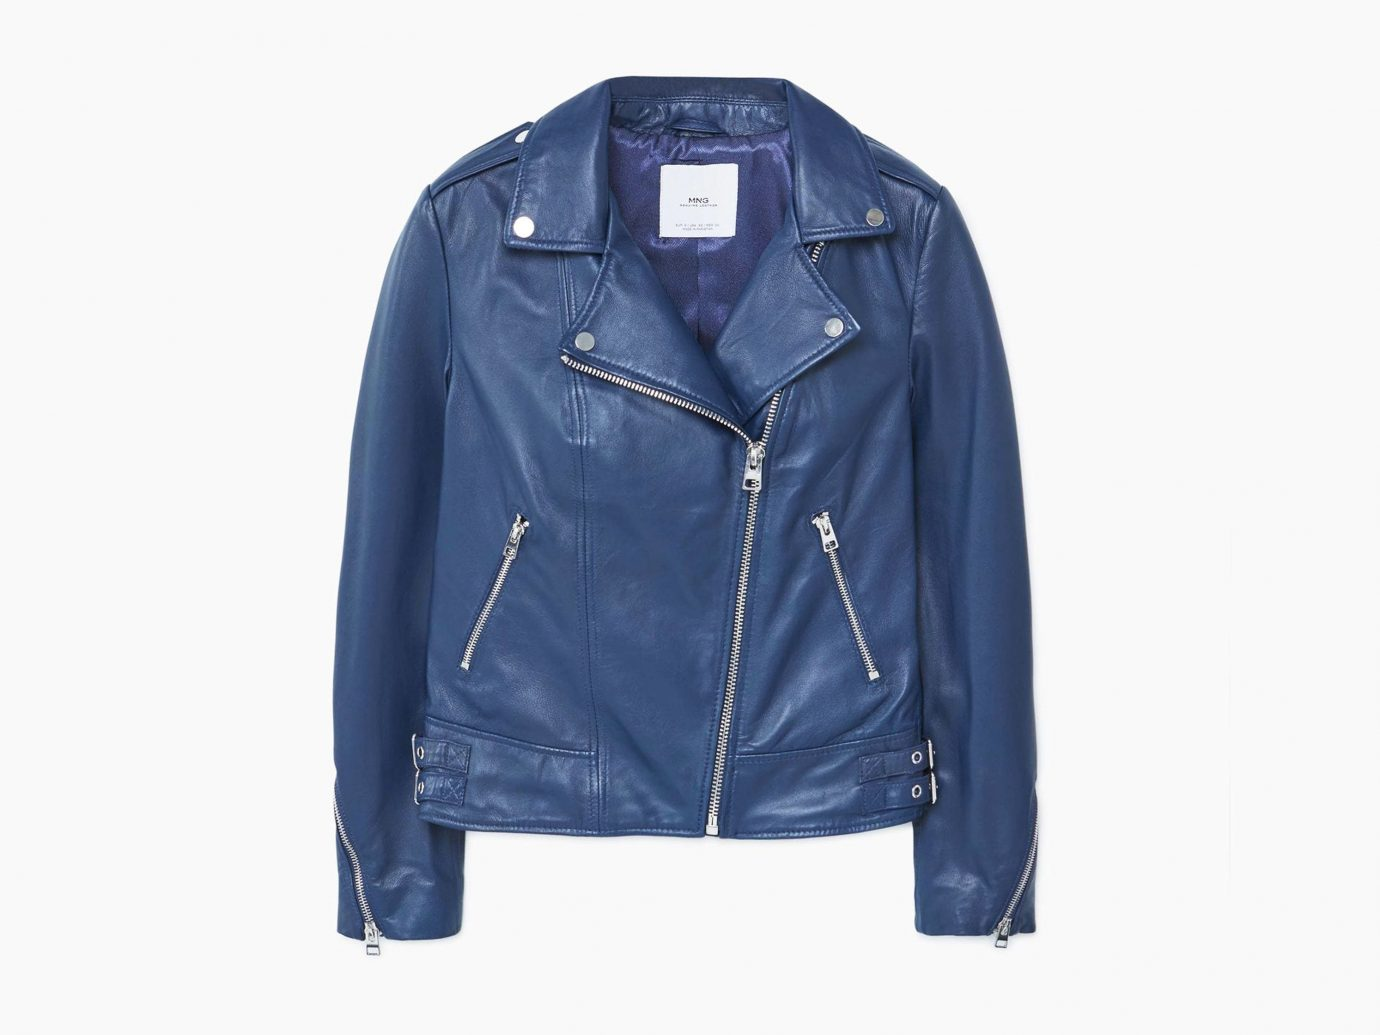 Style + Design person clothing denim jacket leather leather jacket suit wearing coat textile electric blue outerwear sleeve pocket material posing dressed